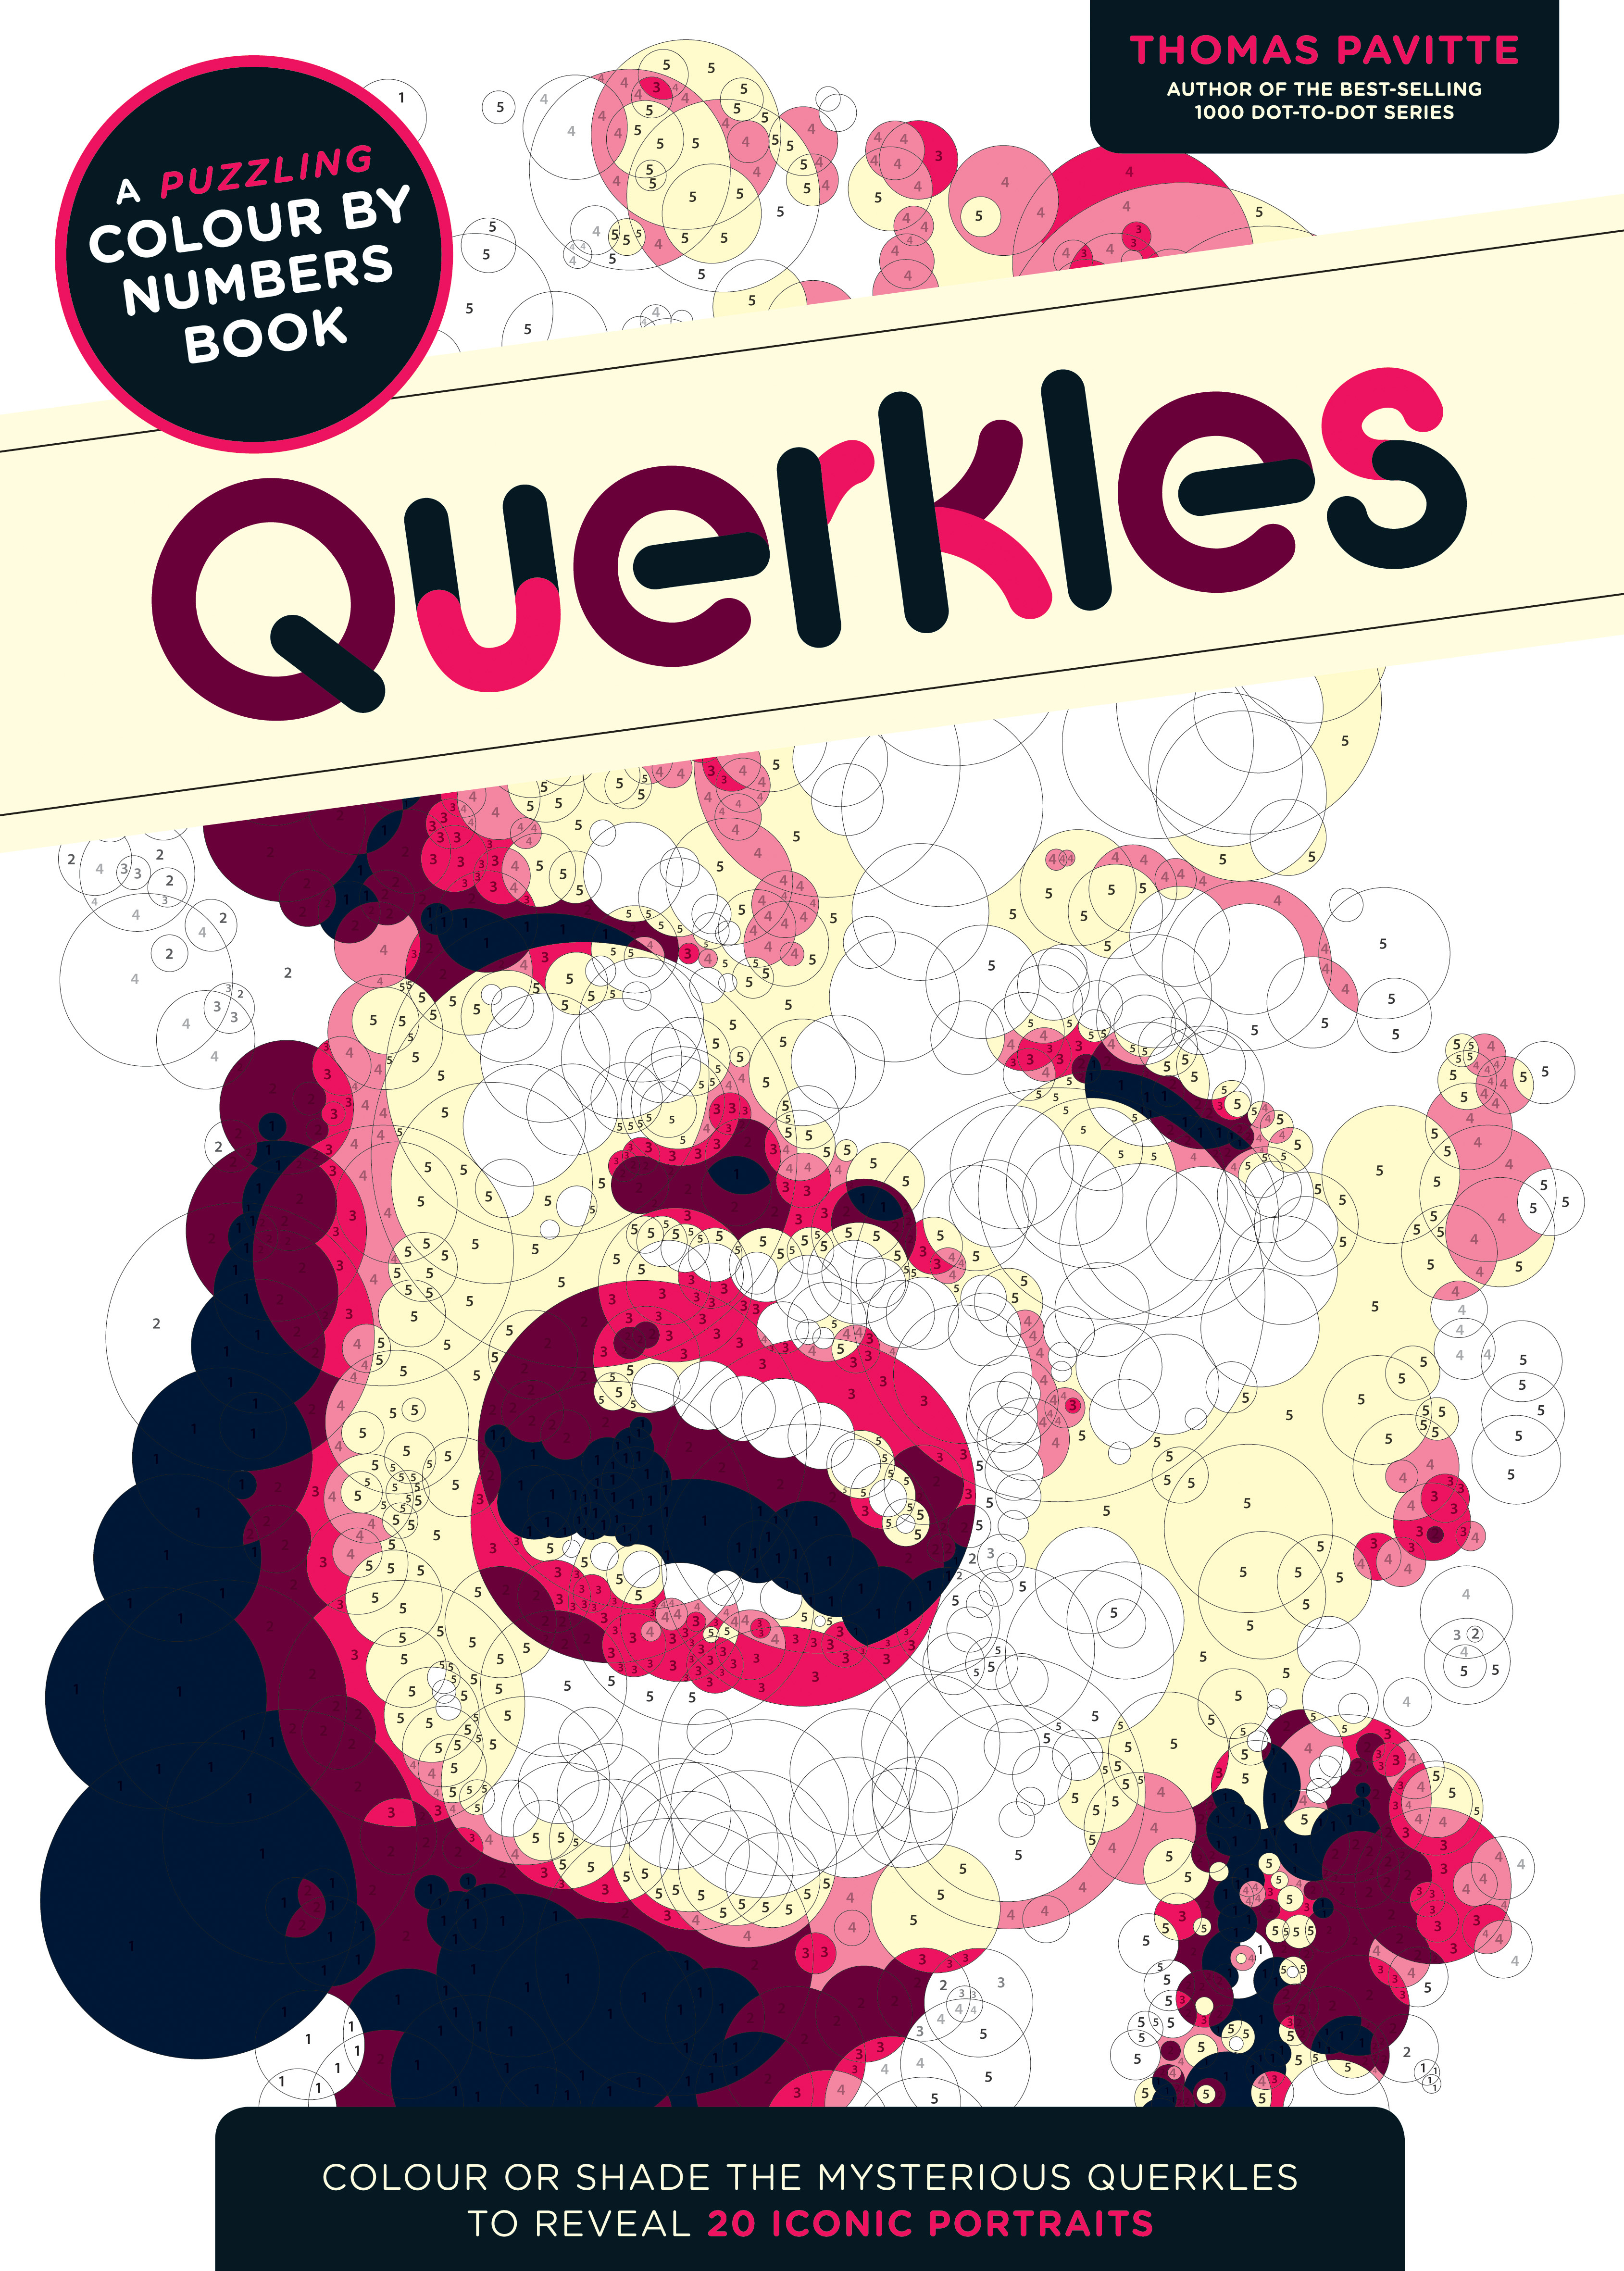 Querkles: A Puzzling Colour-by-Numbers Book by Thomas Pavitte, ISBN: 9781781572405